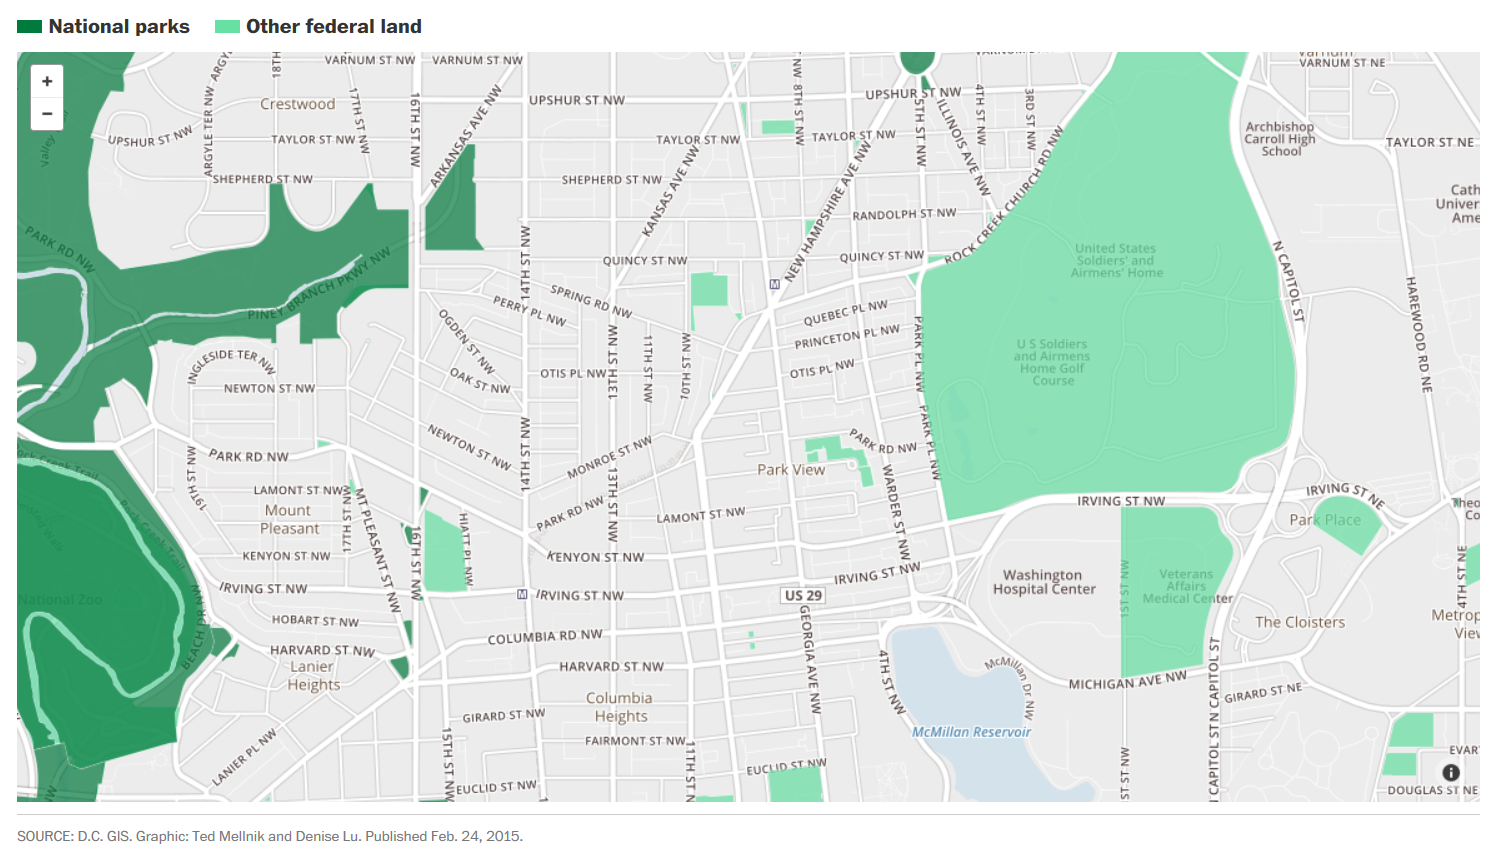 Map Showing Federal Land in D.C. | Park View, D.C.